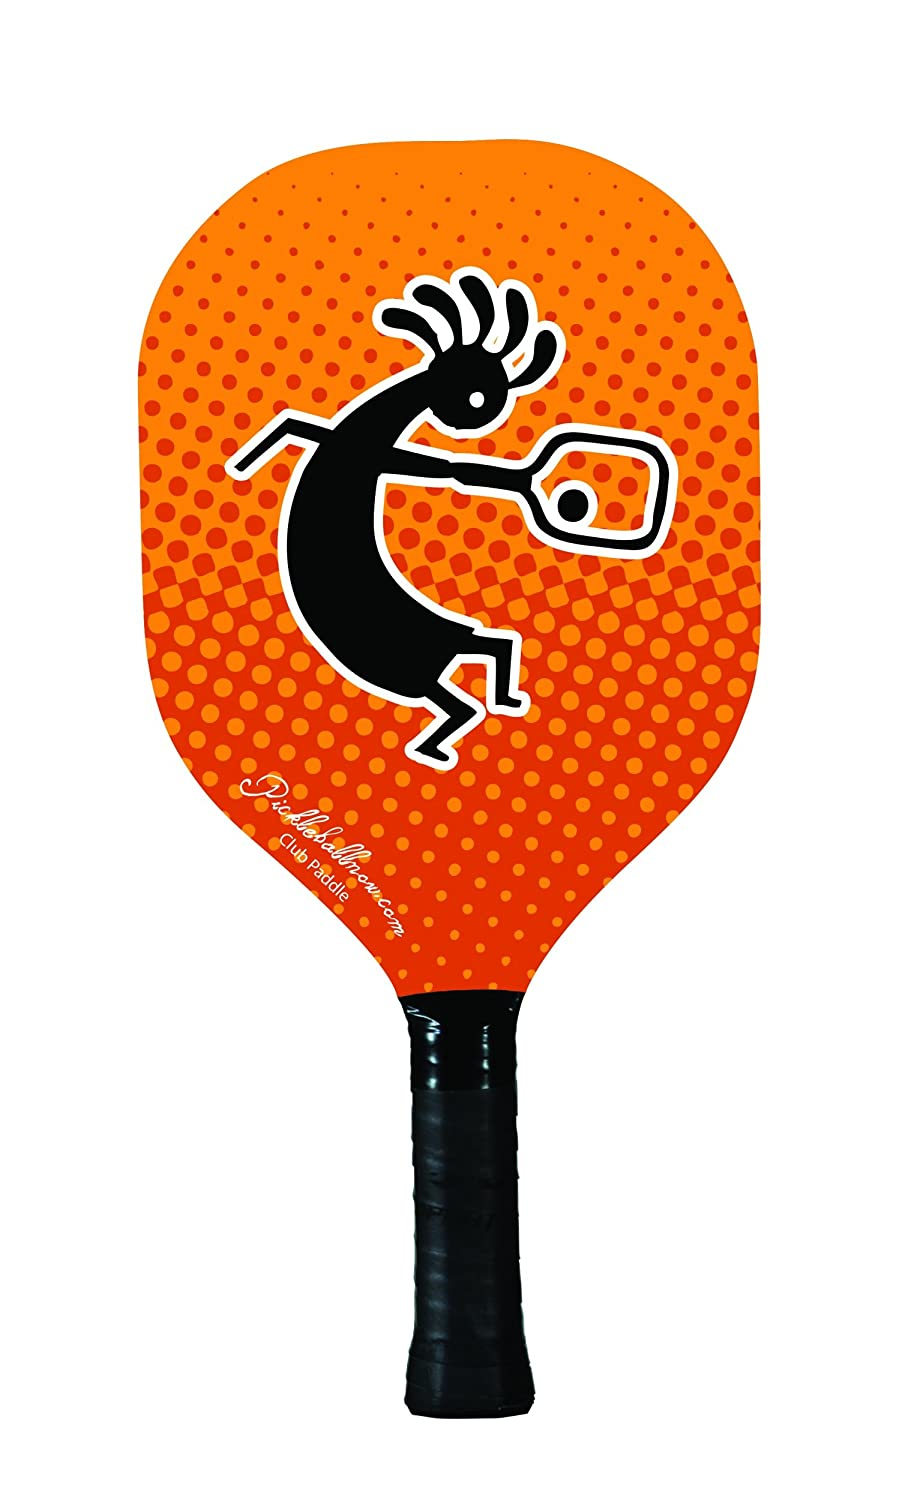 Pickleball Now Club Paddle, Orange Dot Escalade Sports K0224-01